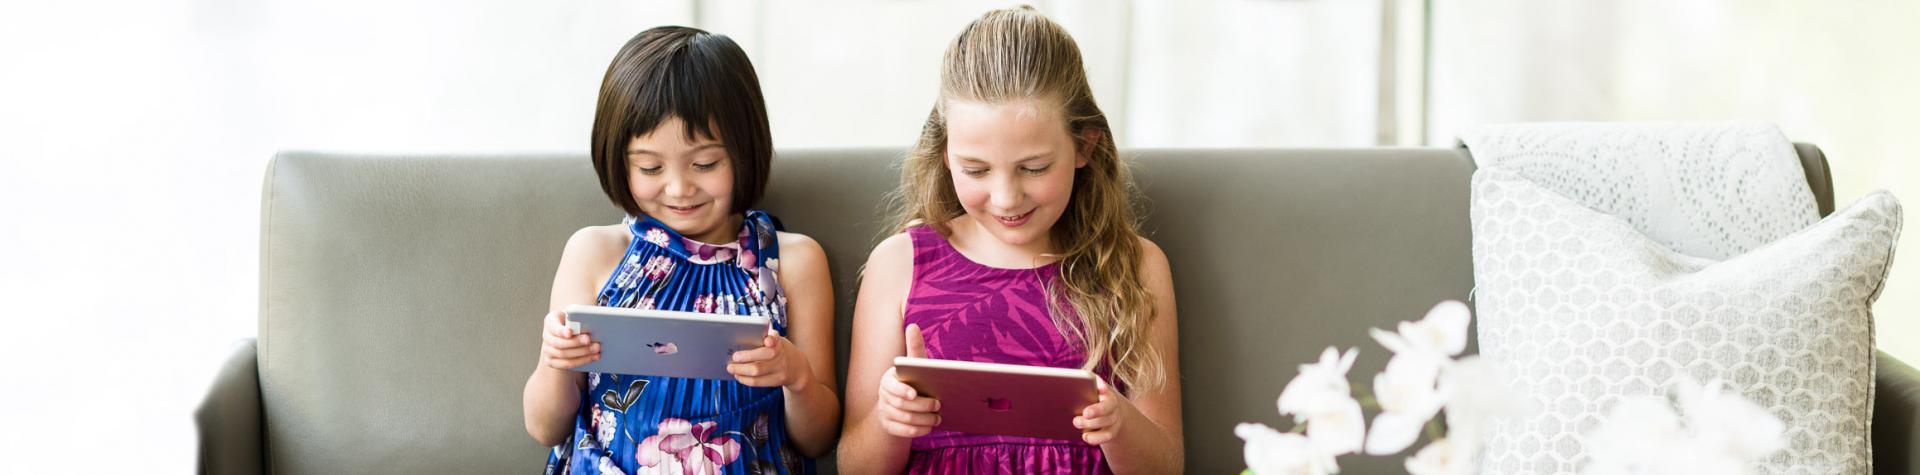 Two children learning music on a tablet